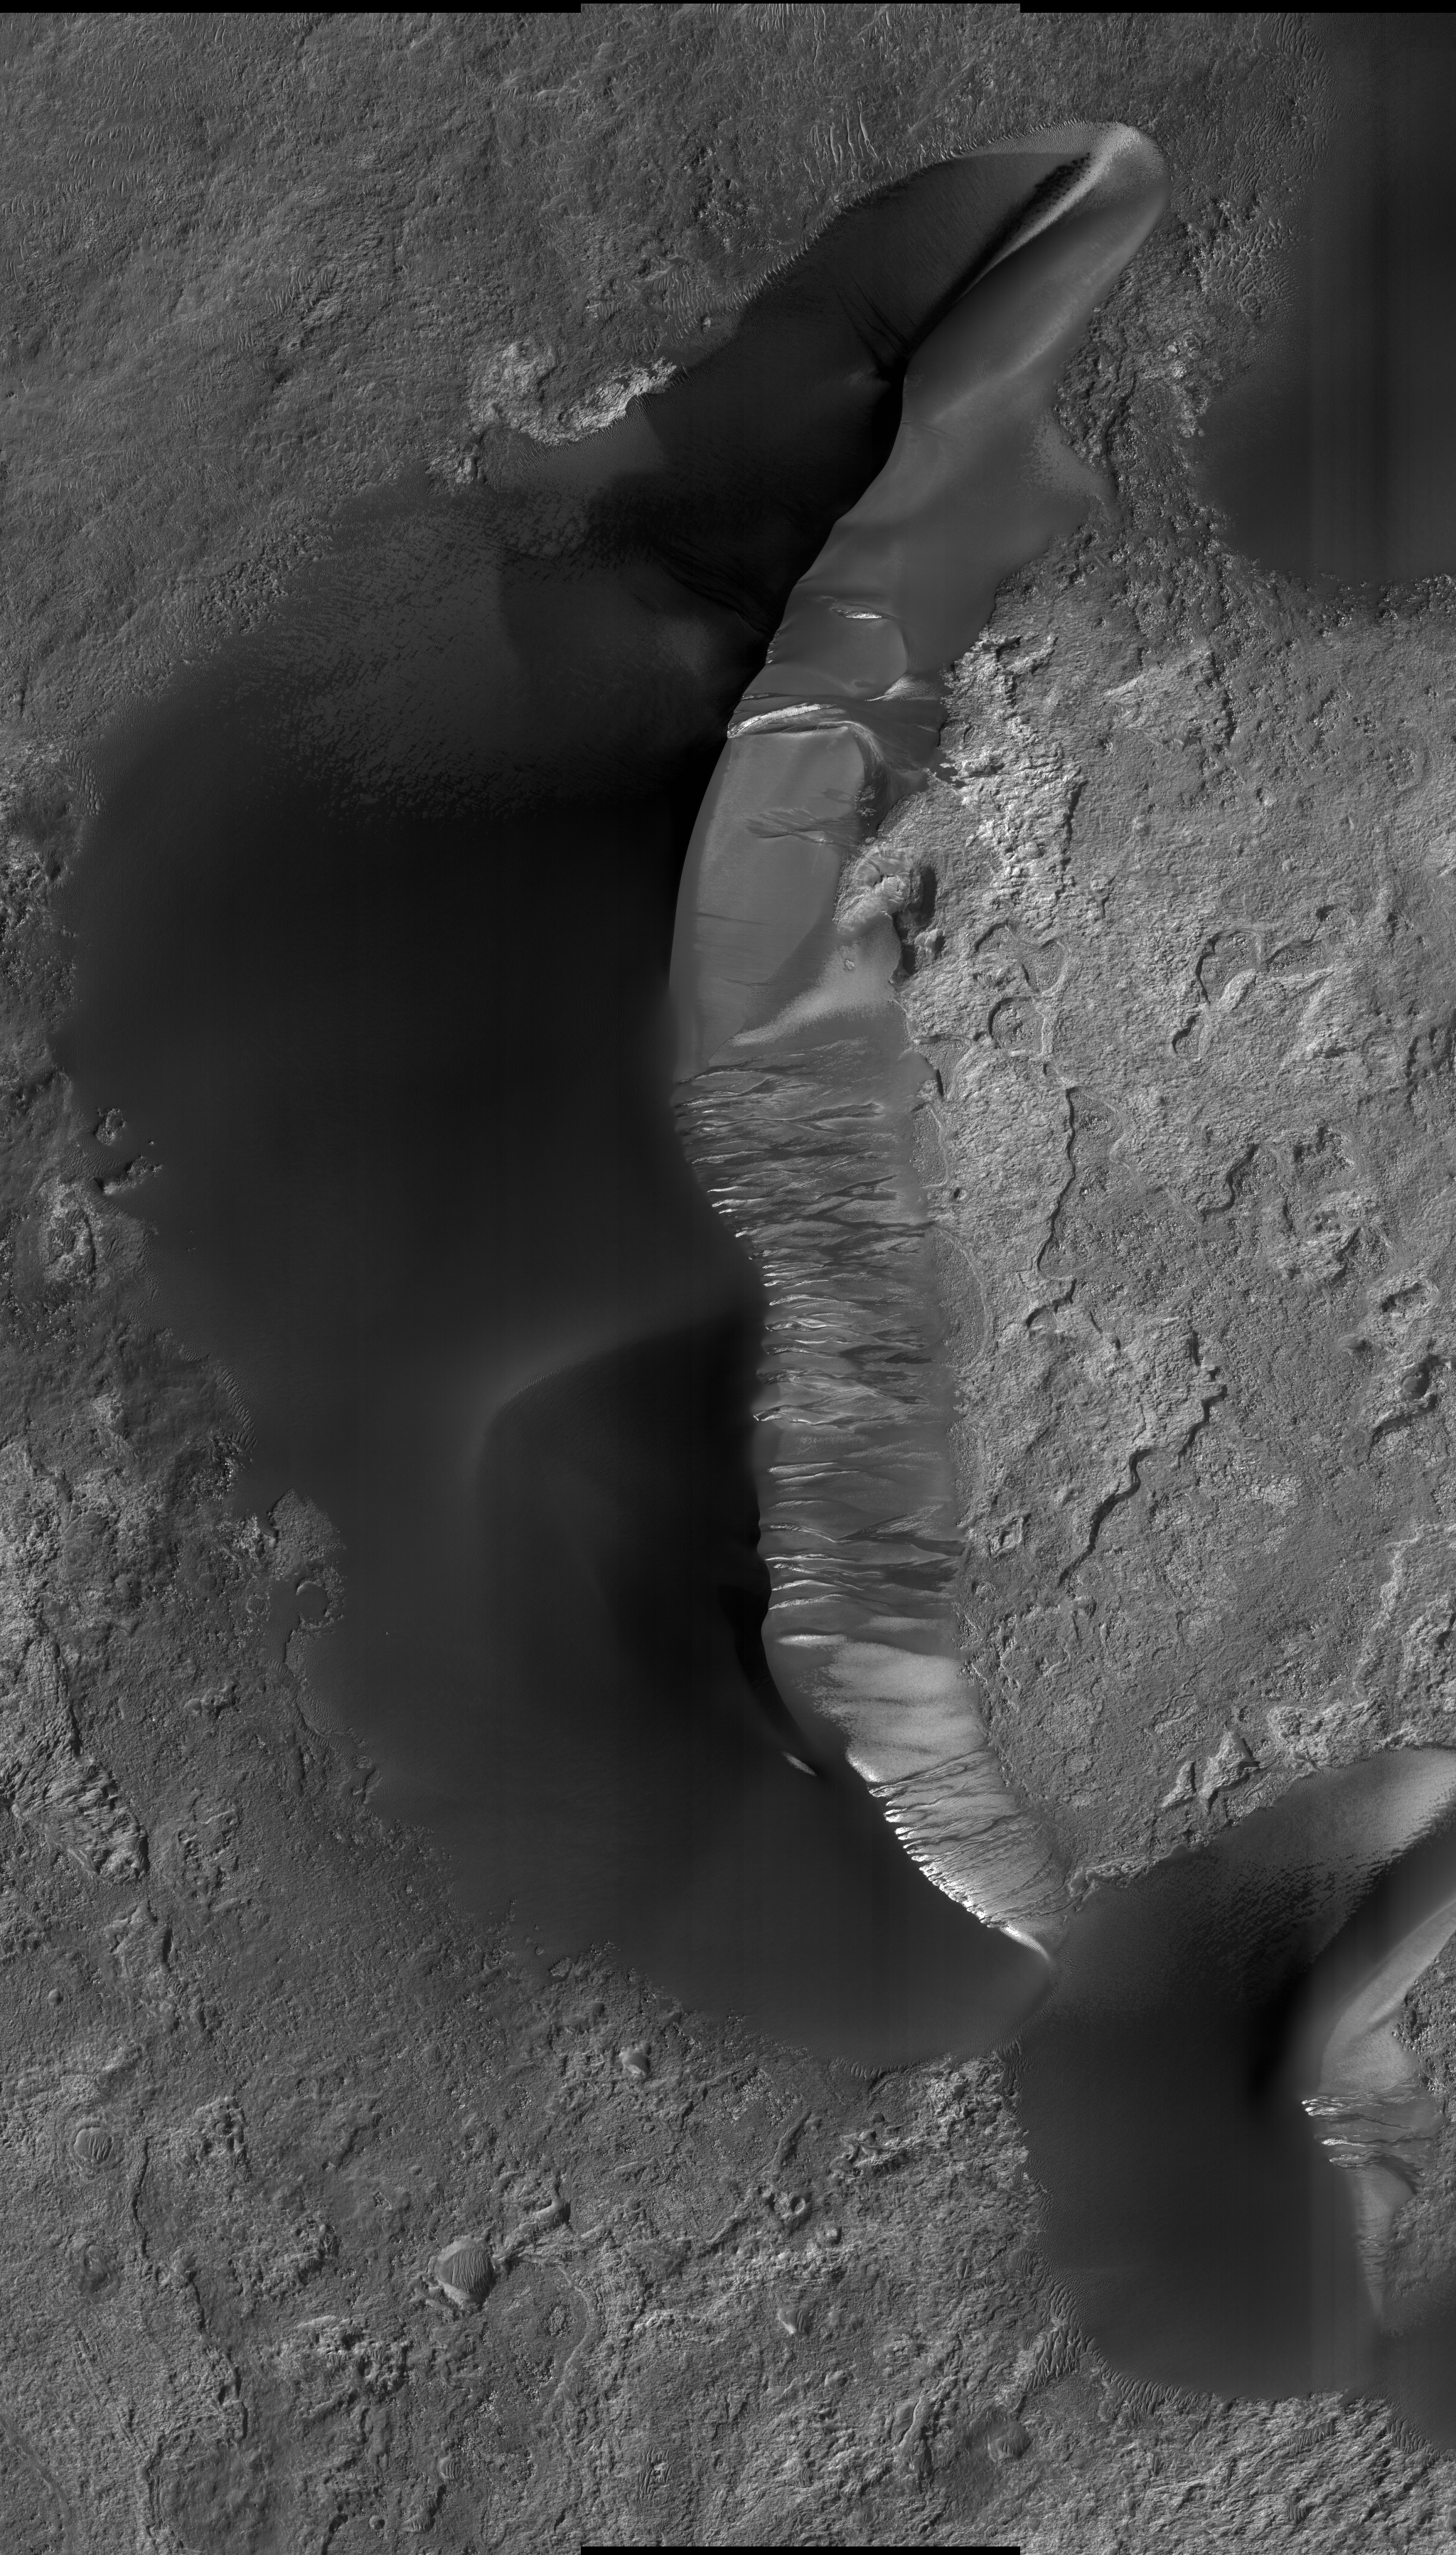 Kaiser dune thawing from seasonal frost! Look how dramatic the dune gullies have become compared to the previous image! HiRISE PSP-001862-1330